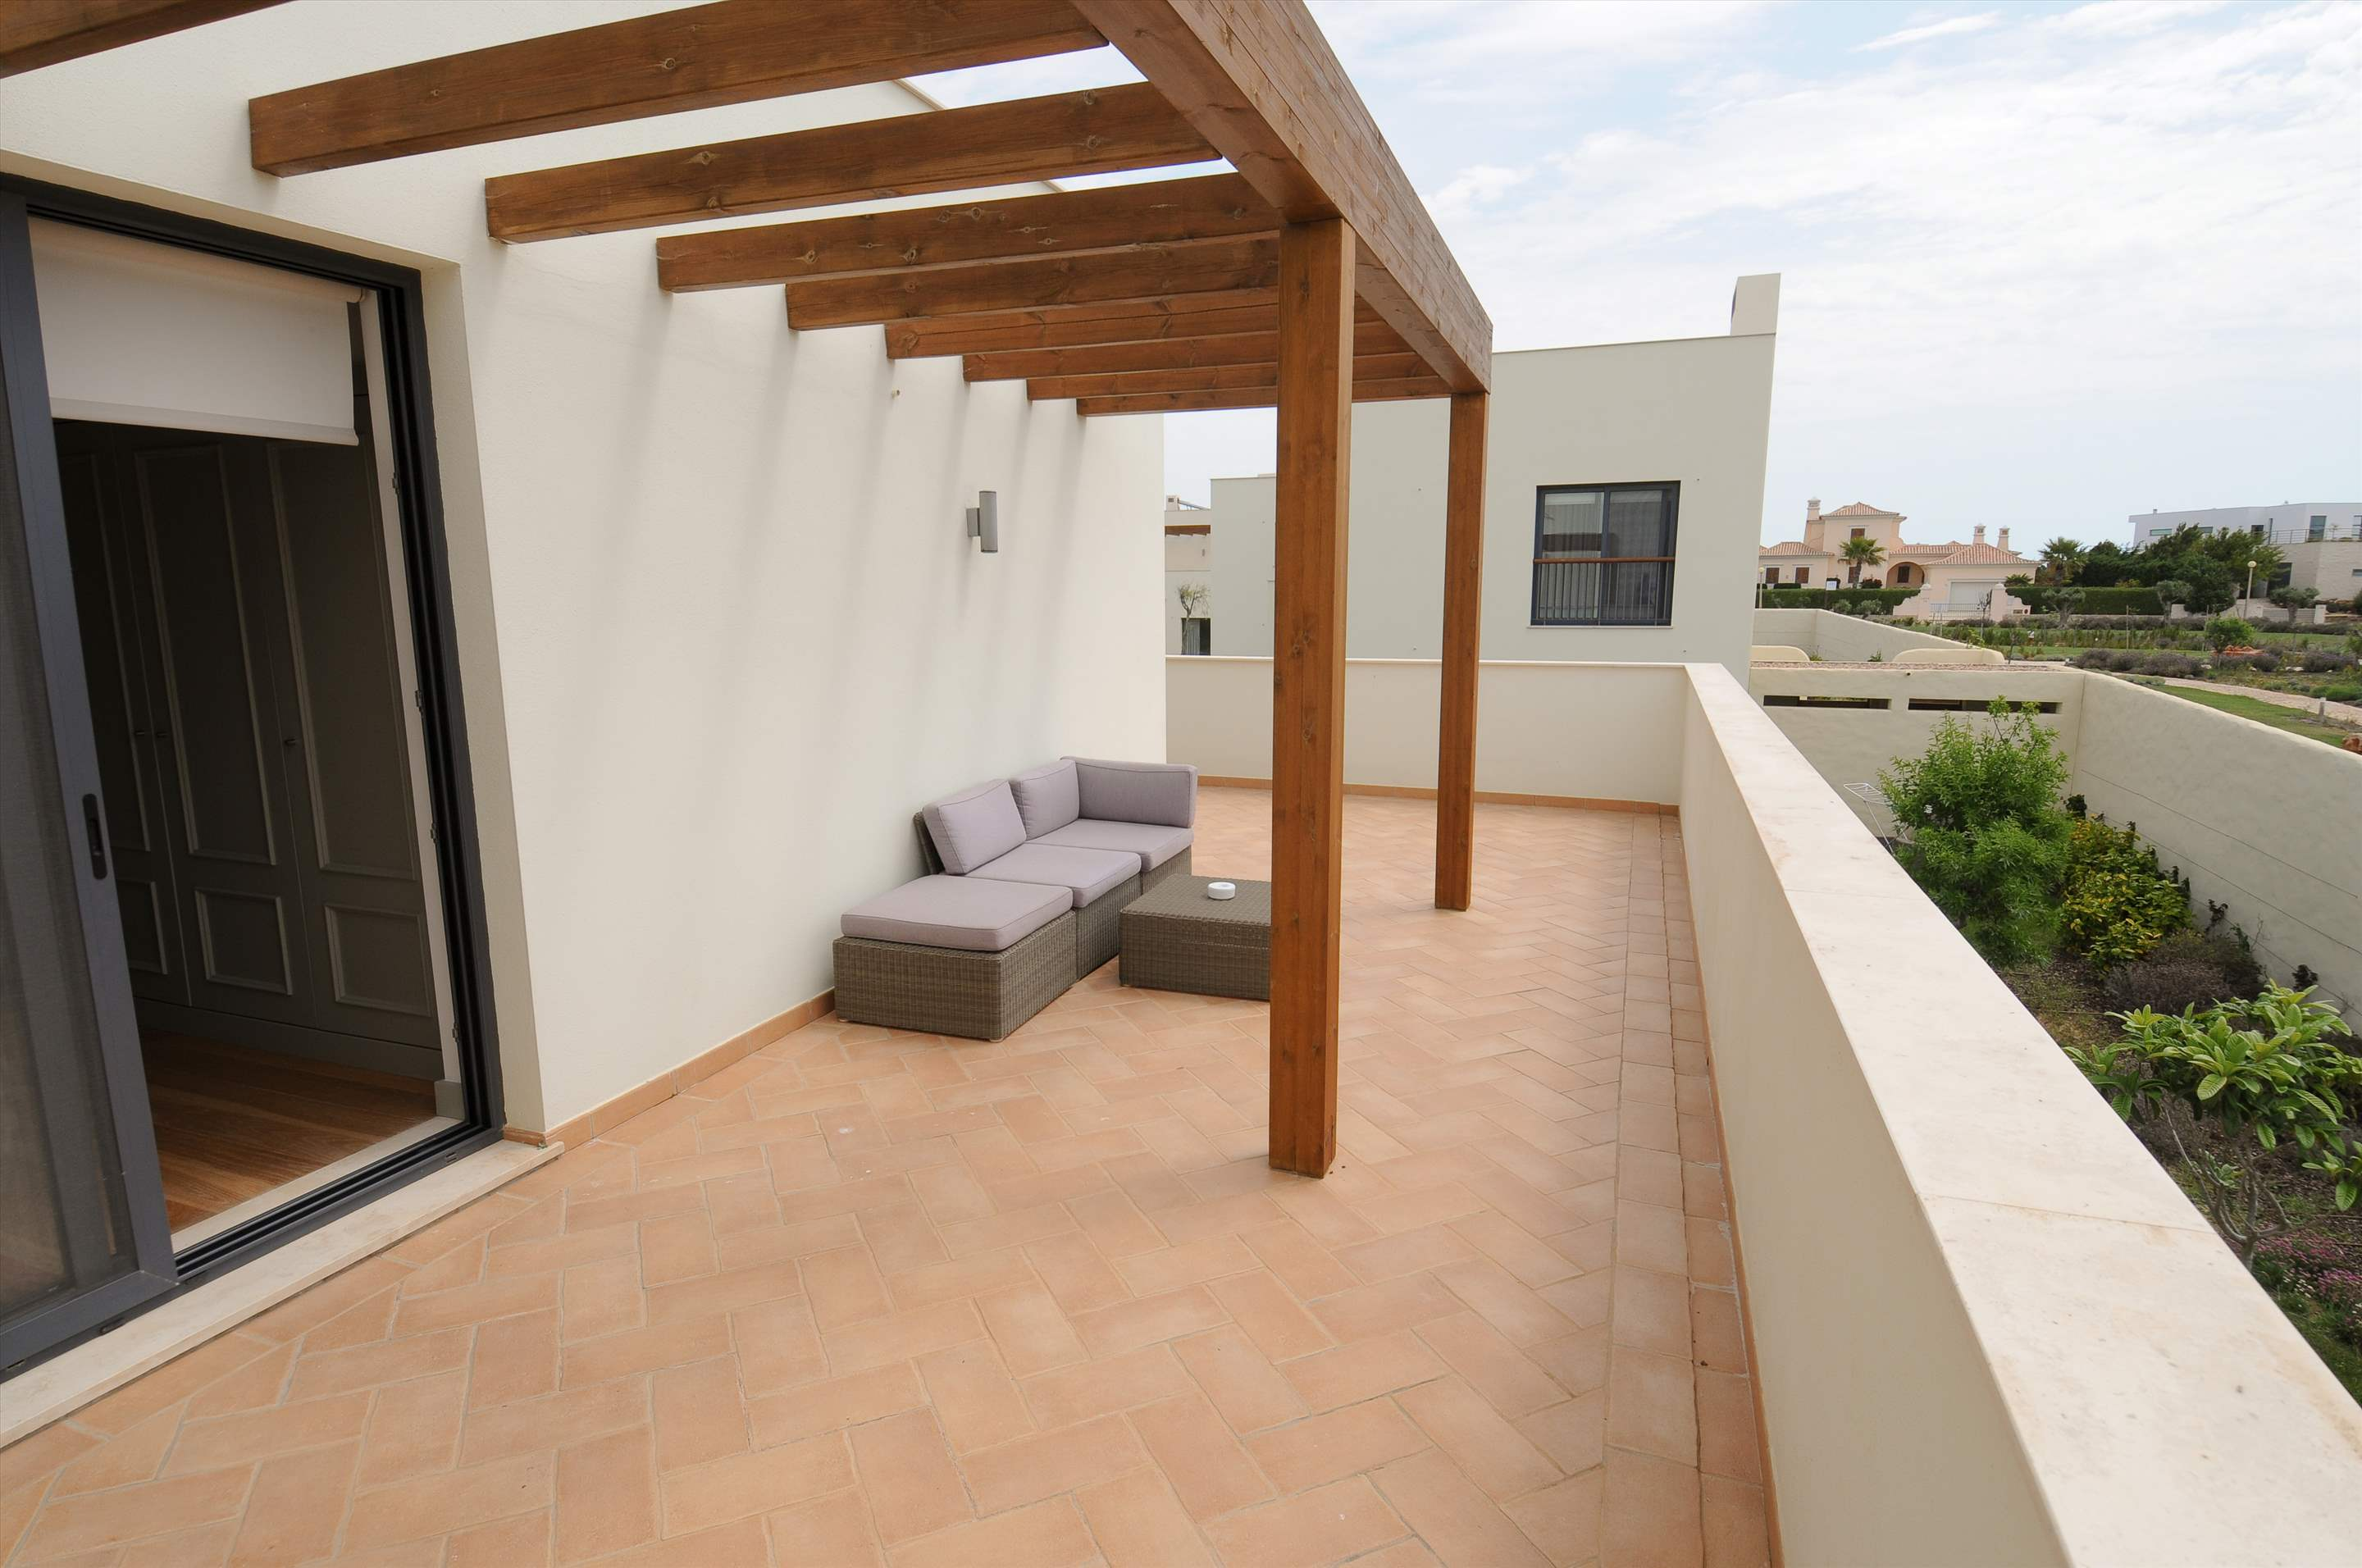 Martinhal Village Garden House, Master Deluxe Three Bedroom, 3 bedroom villa in Martinhal Sagres, Algarve Photo #19